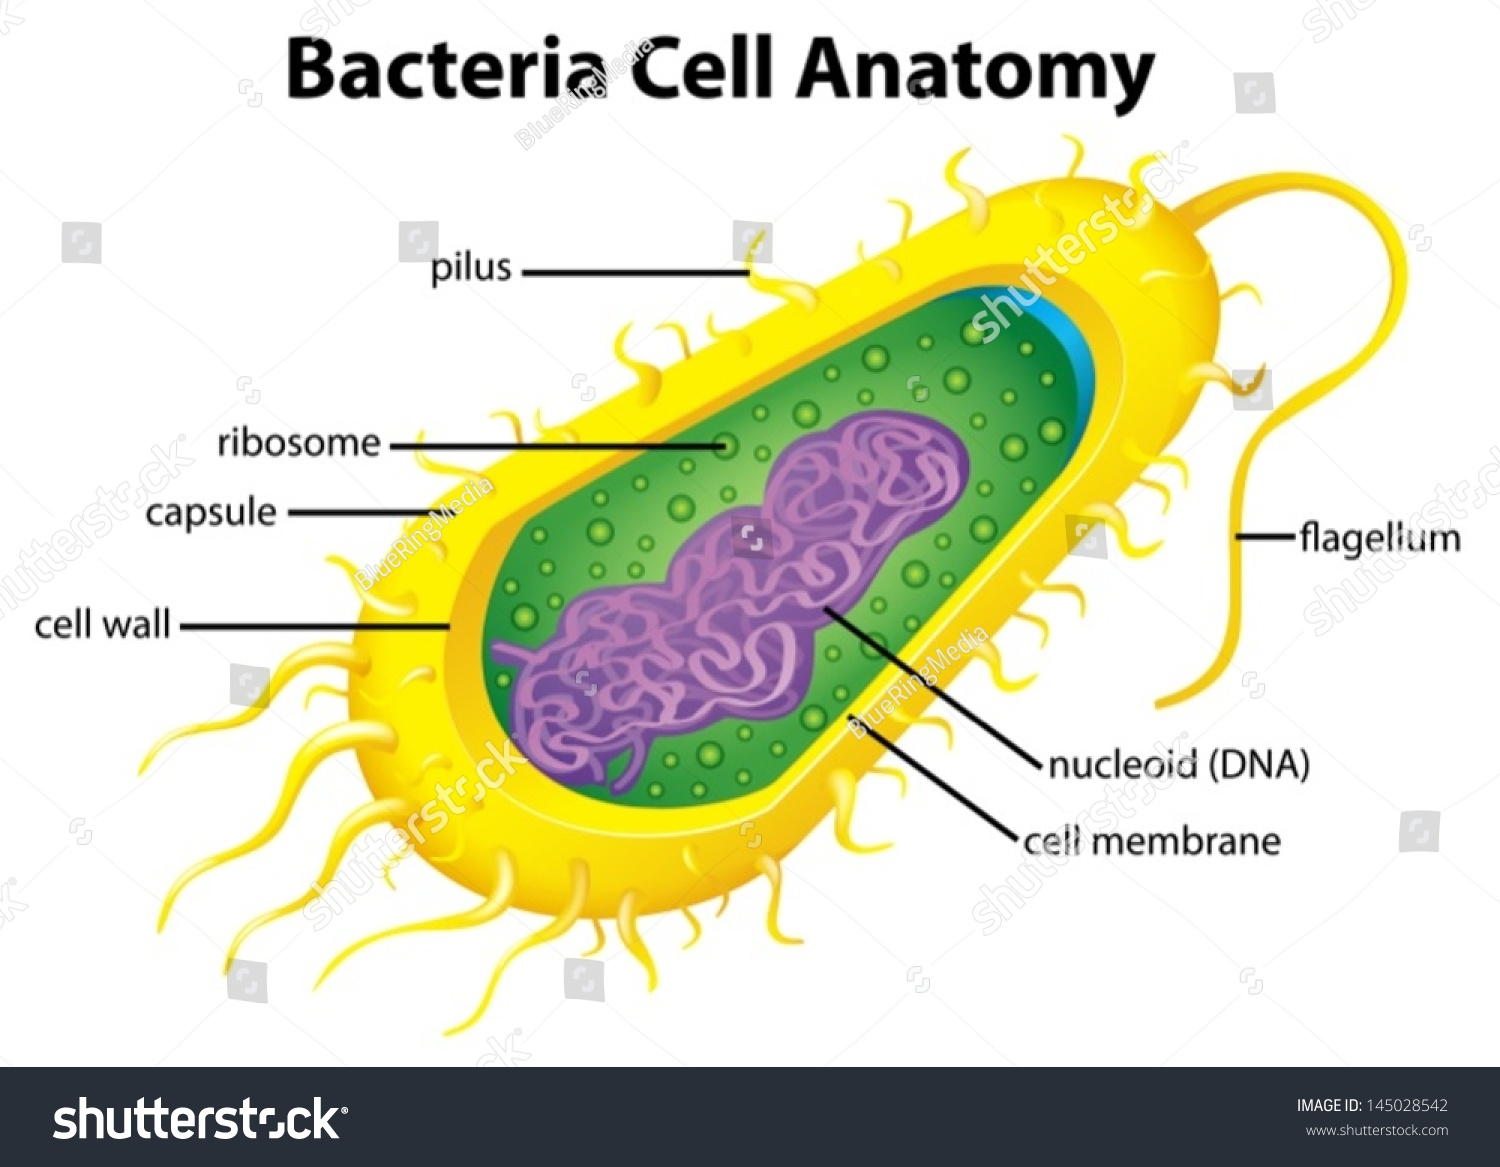 hight resolution of illustration of the bacteria cell structure